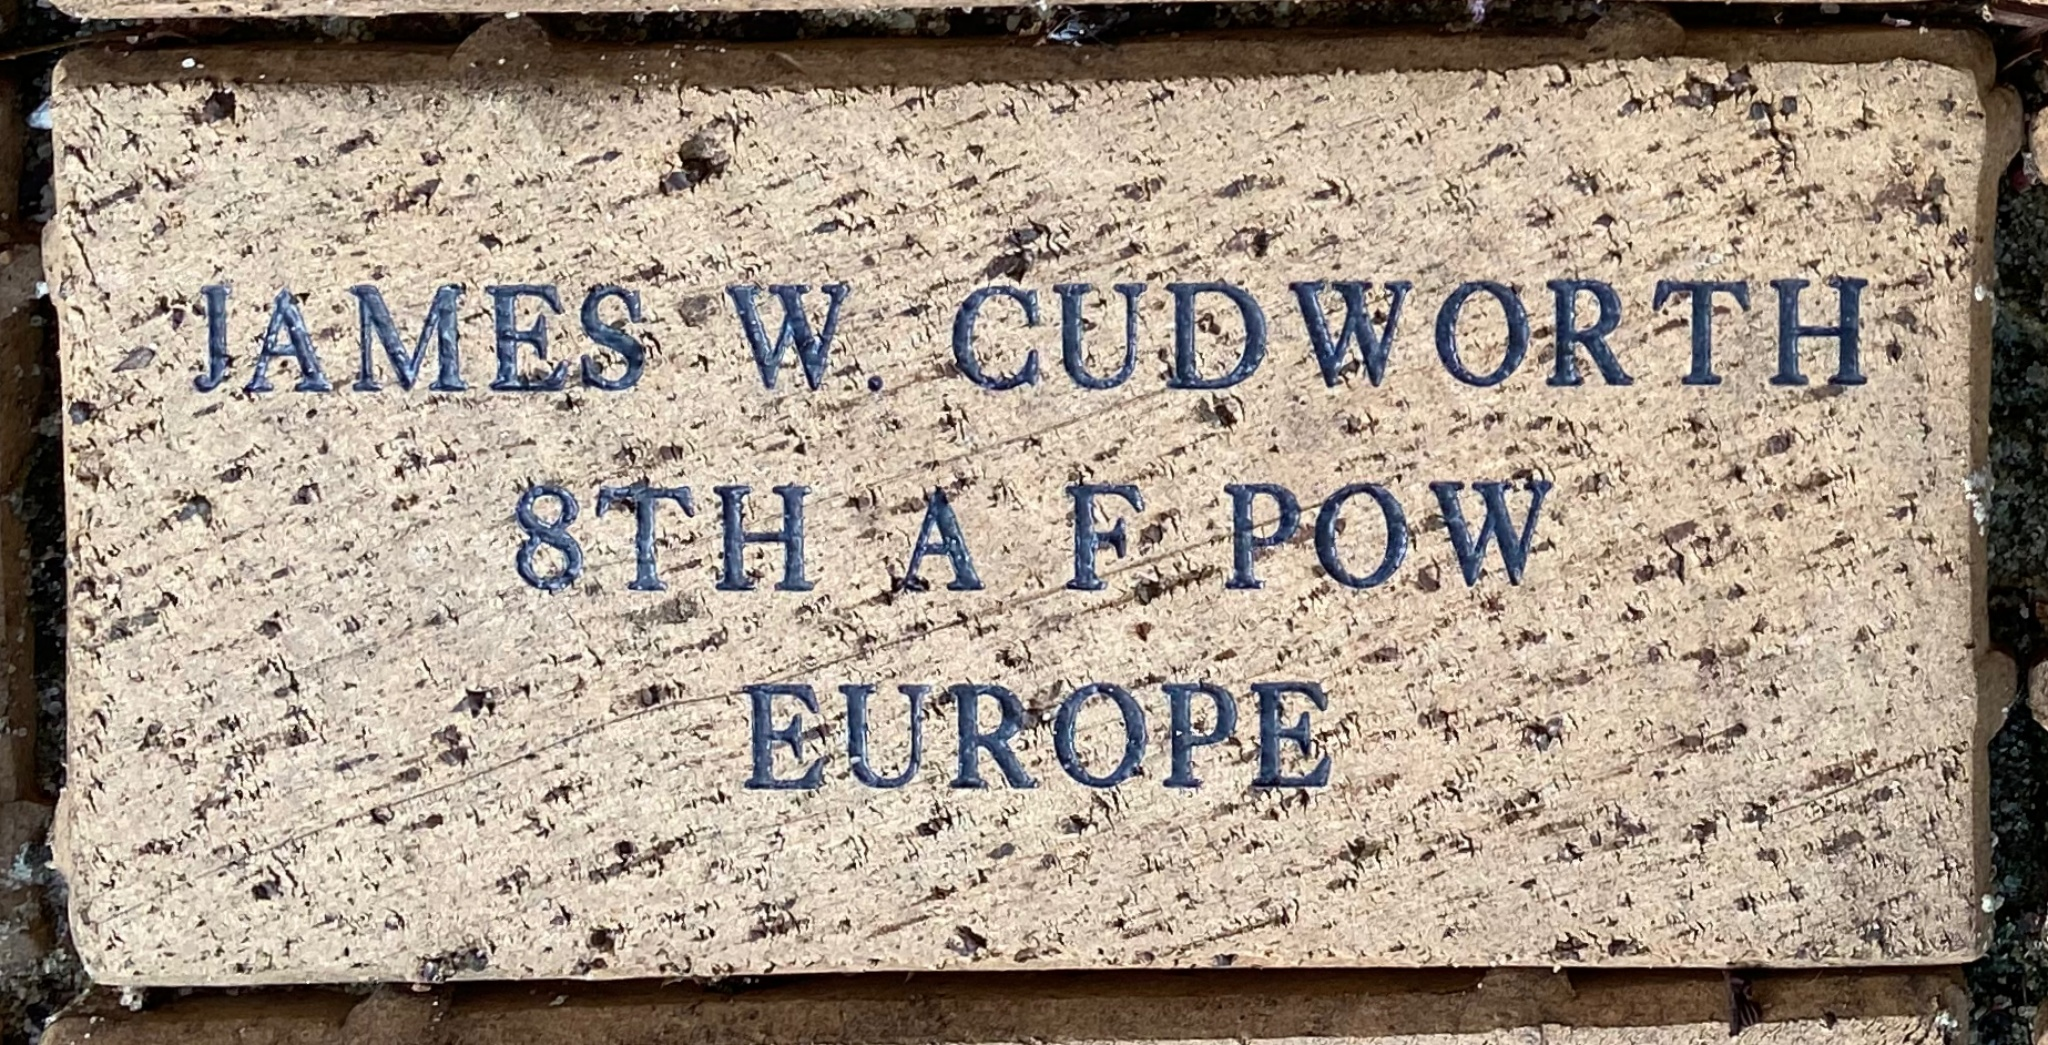 JAMES W. CUDWORTH 8TH A F POW  EUROPE